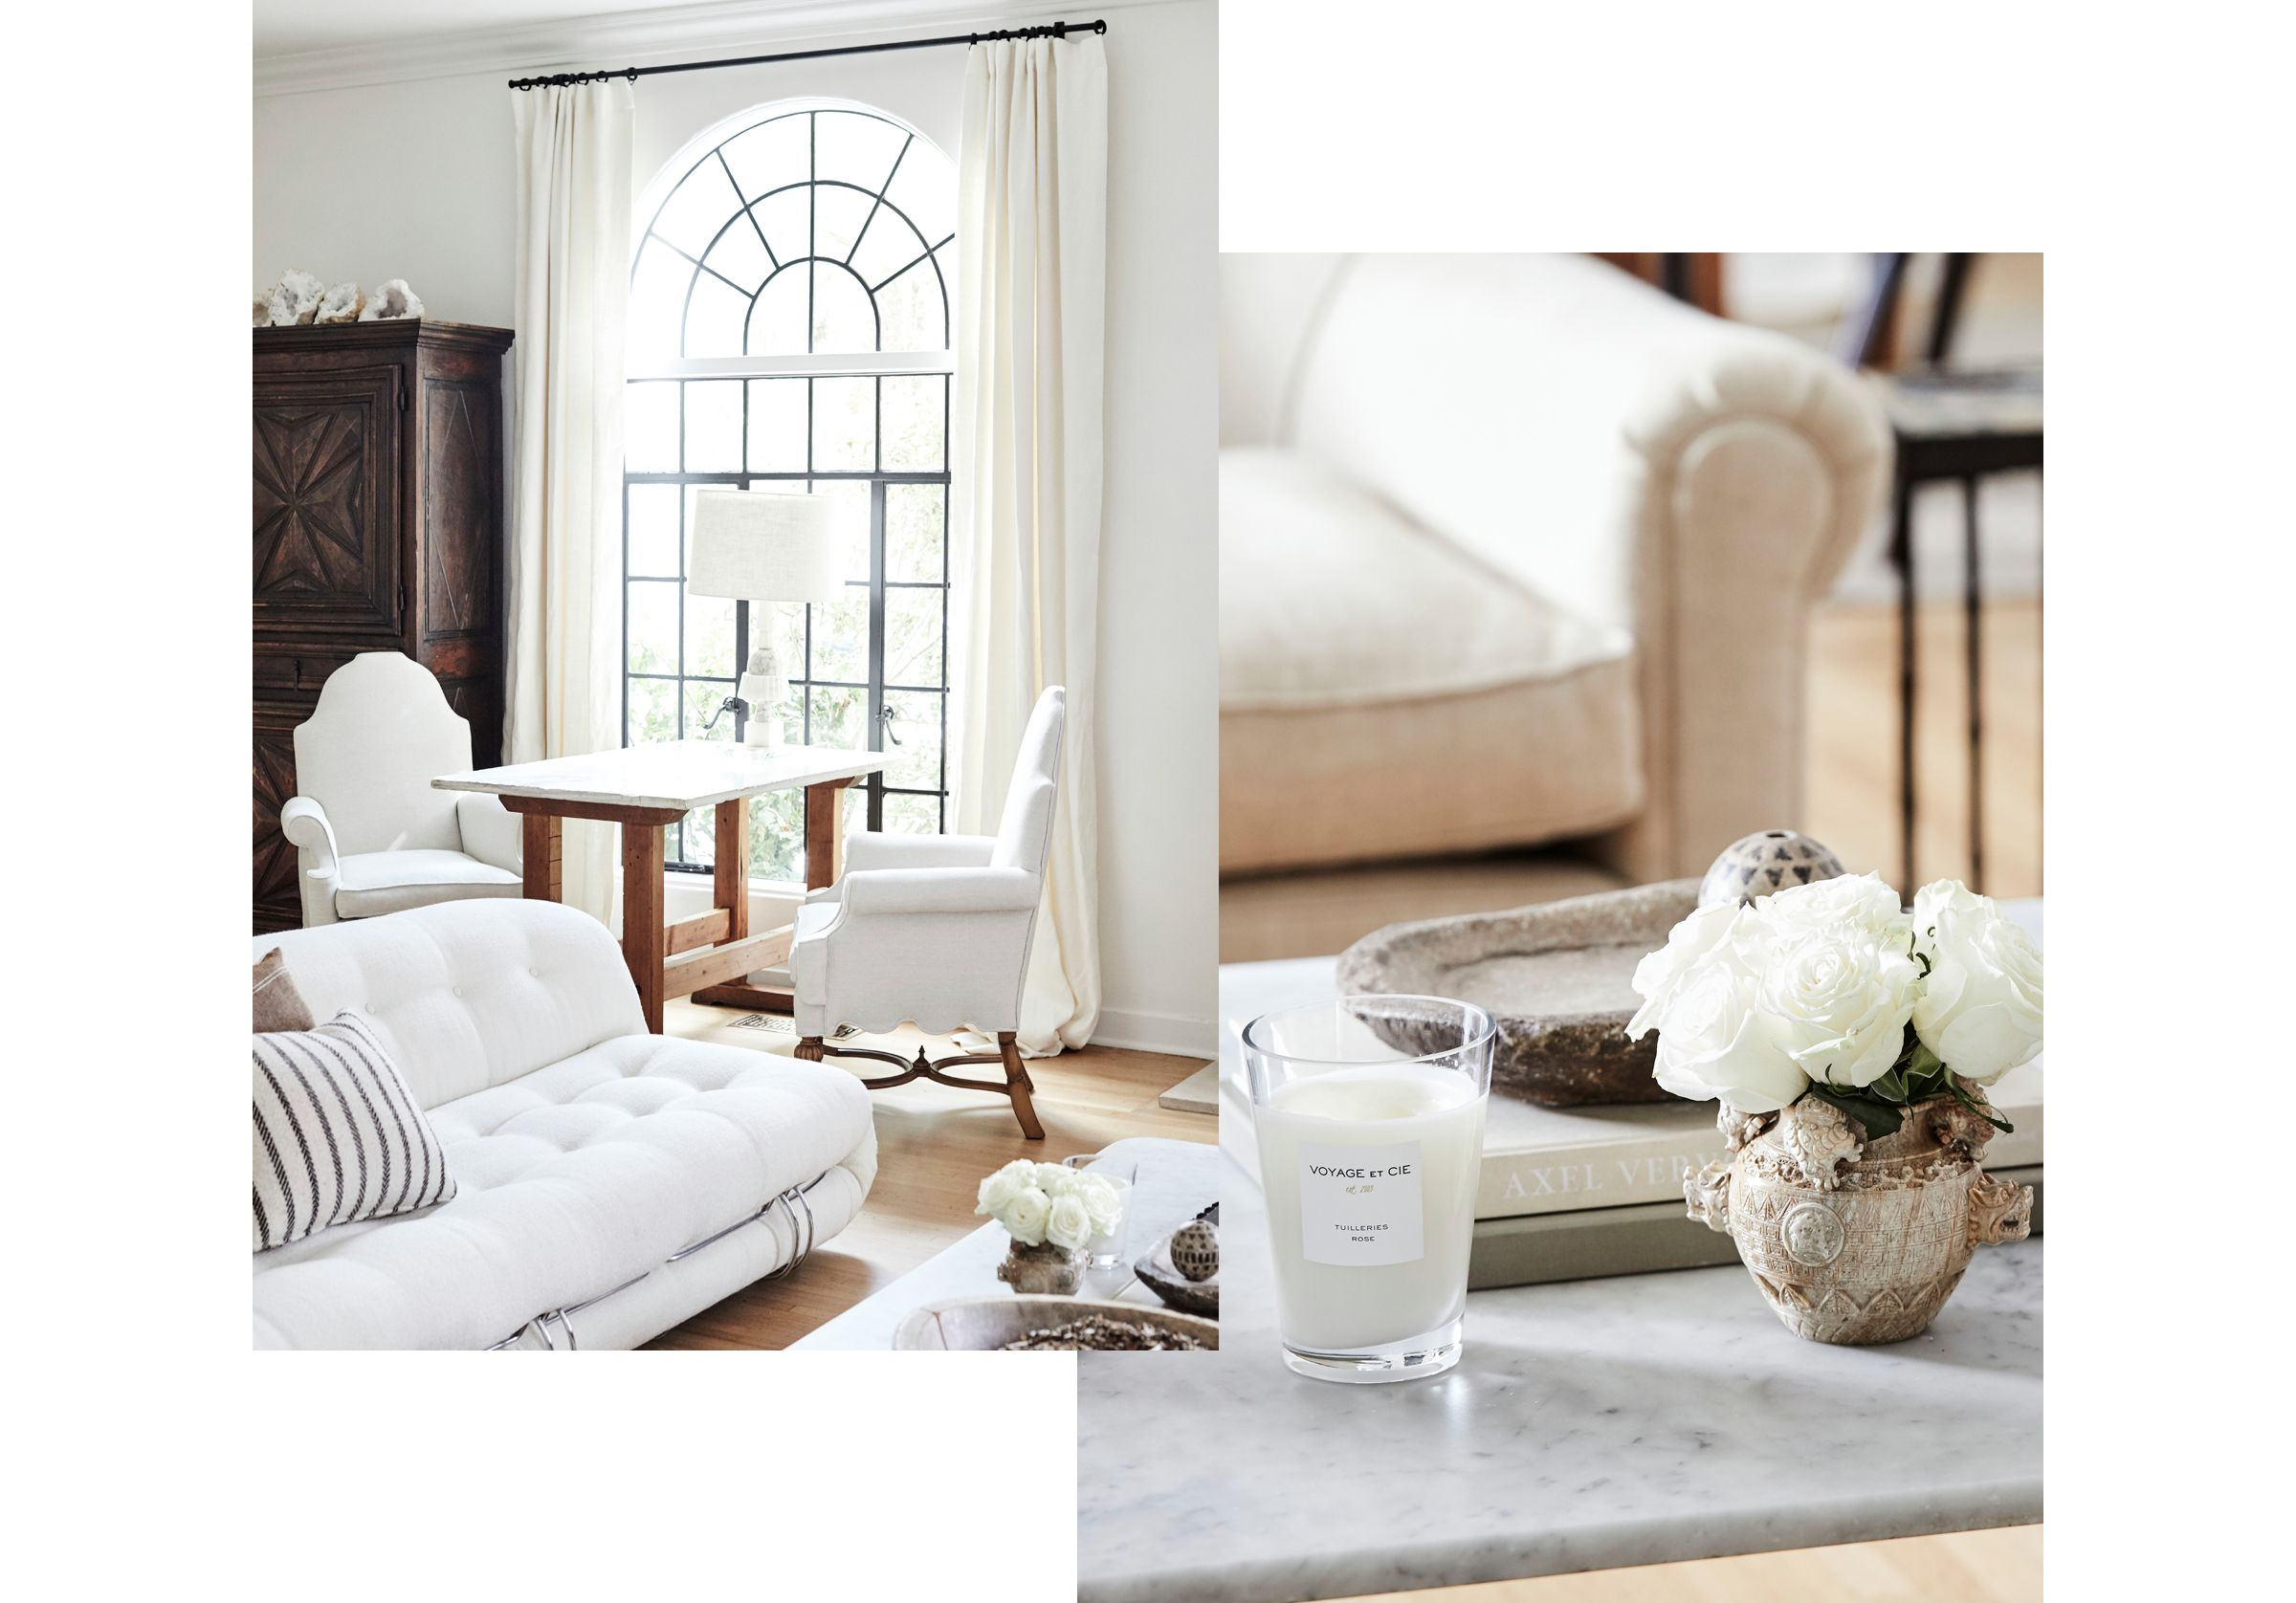 Inside Nate Berkus And Jeremiah Brent's Family Home In L.a (View 12 of 20)